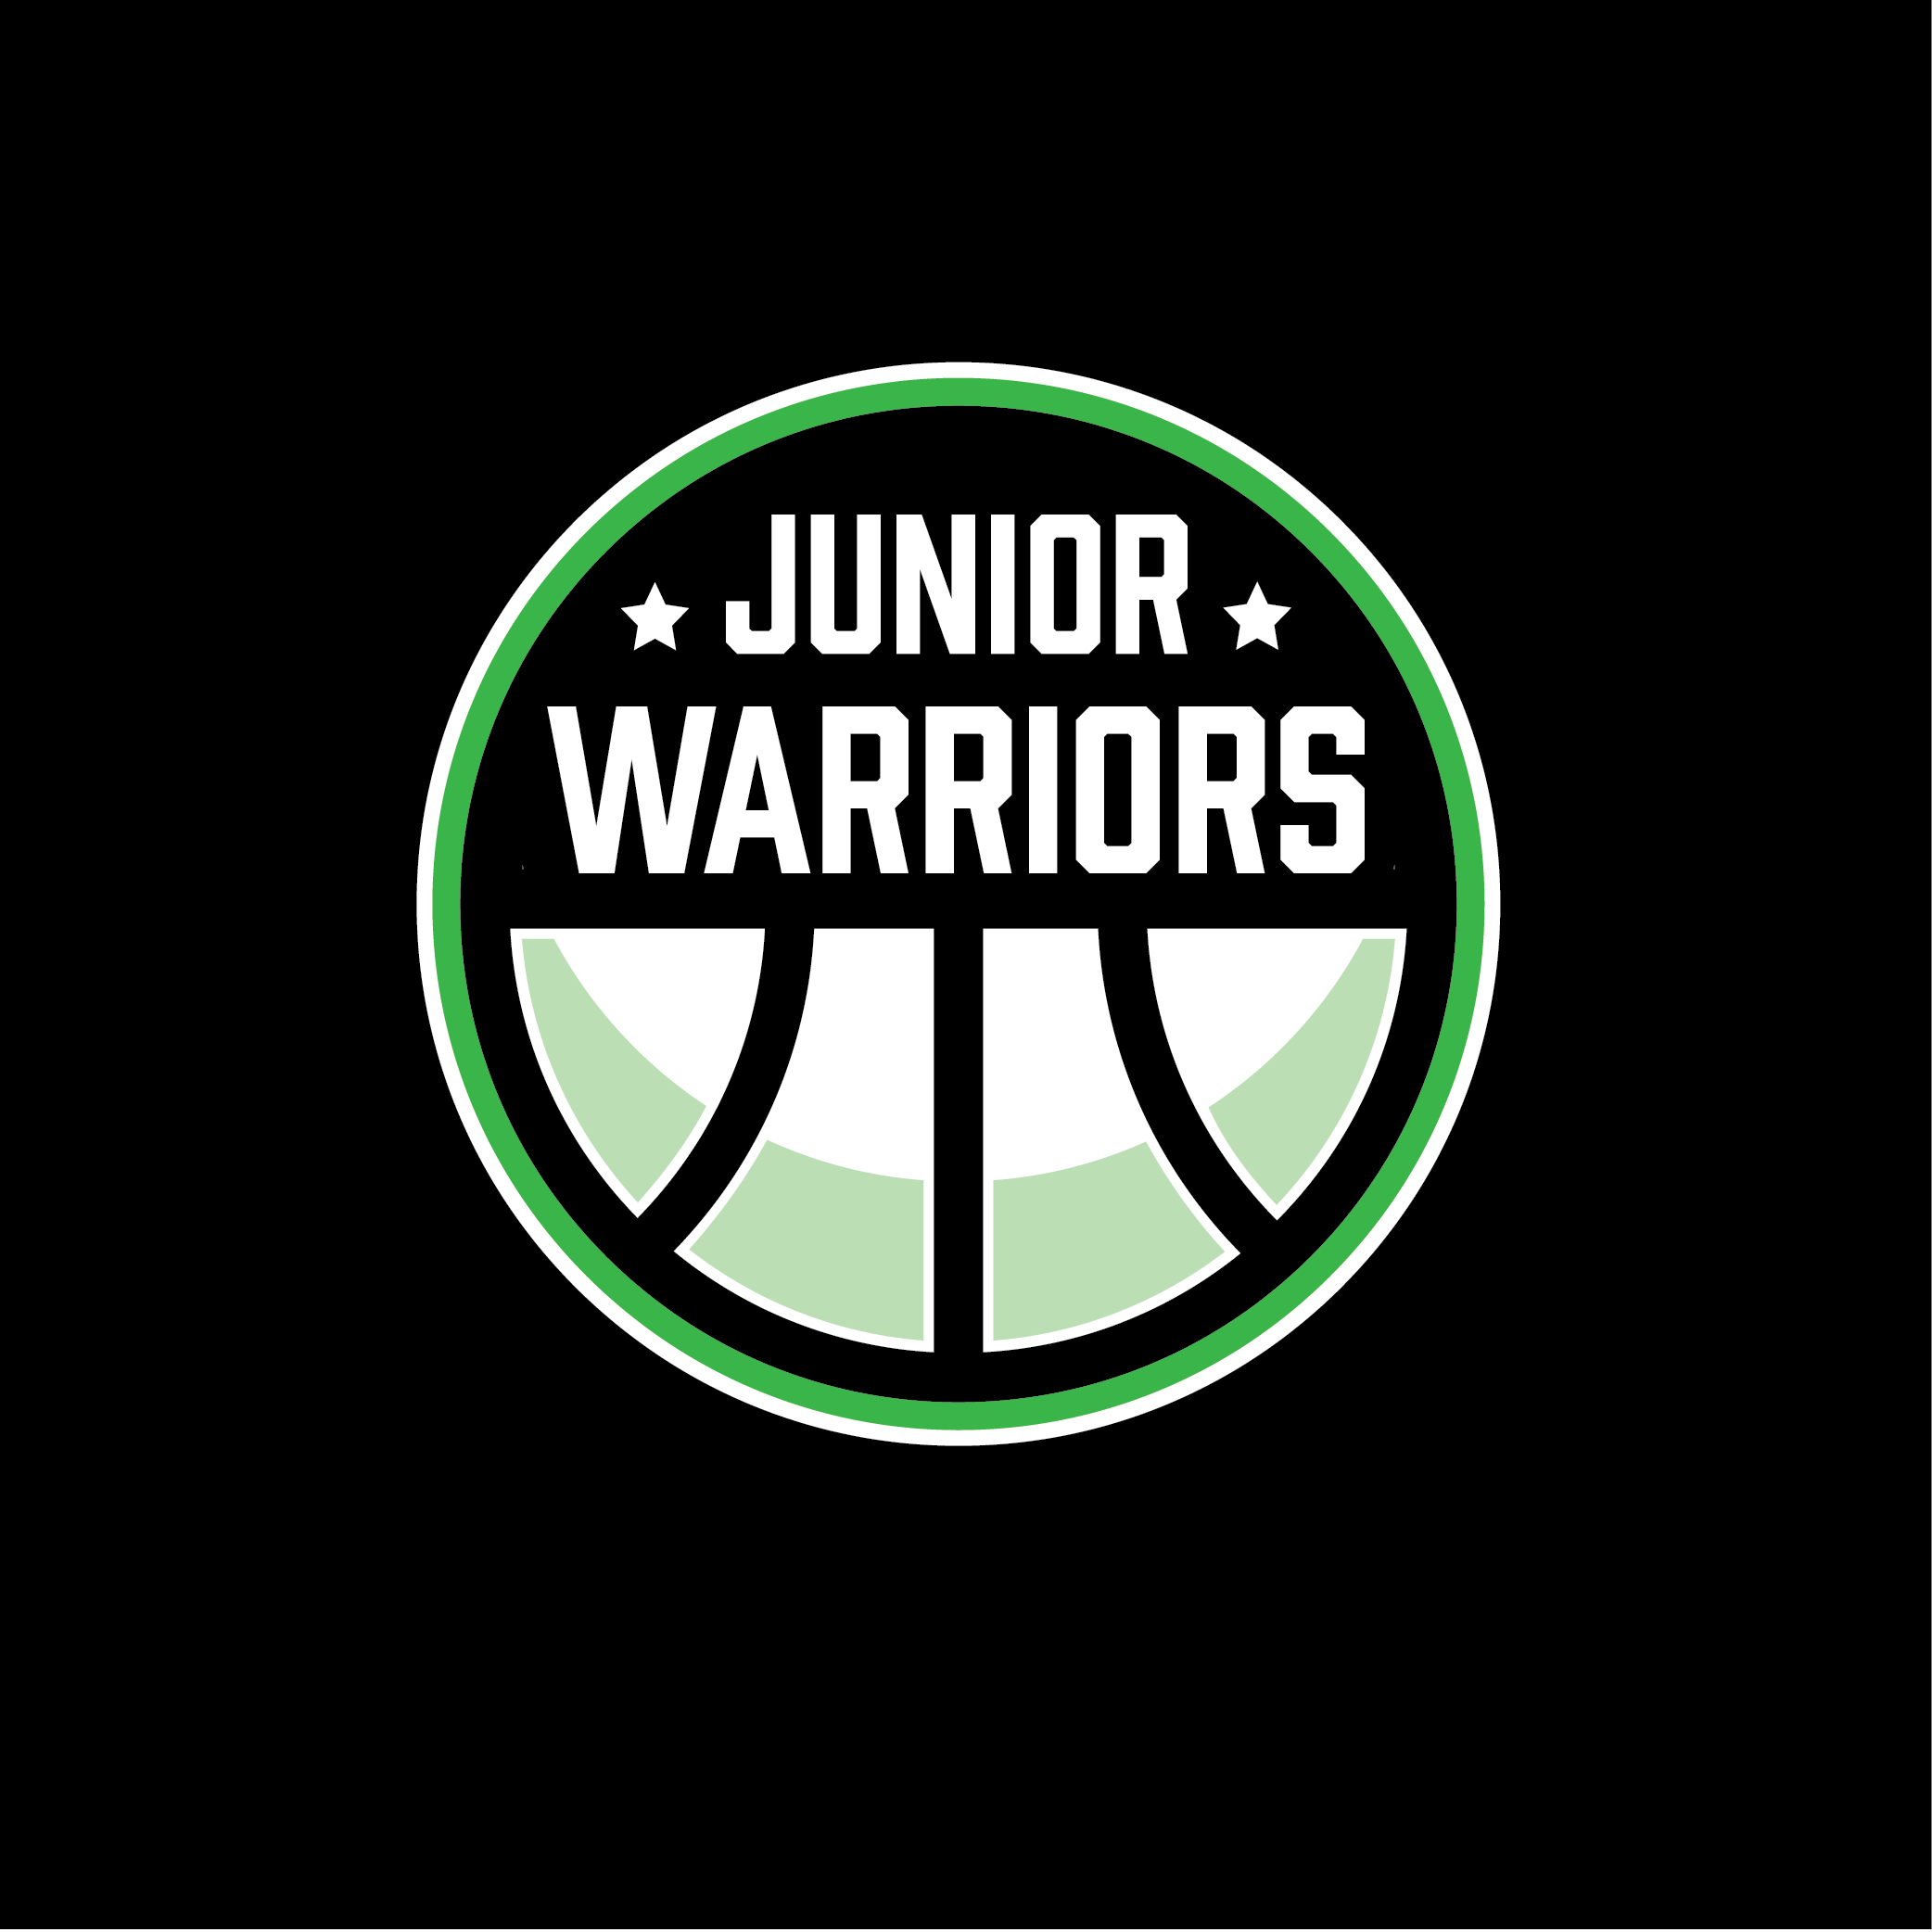 Jr. Warriors Logo1.png